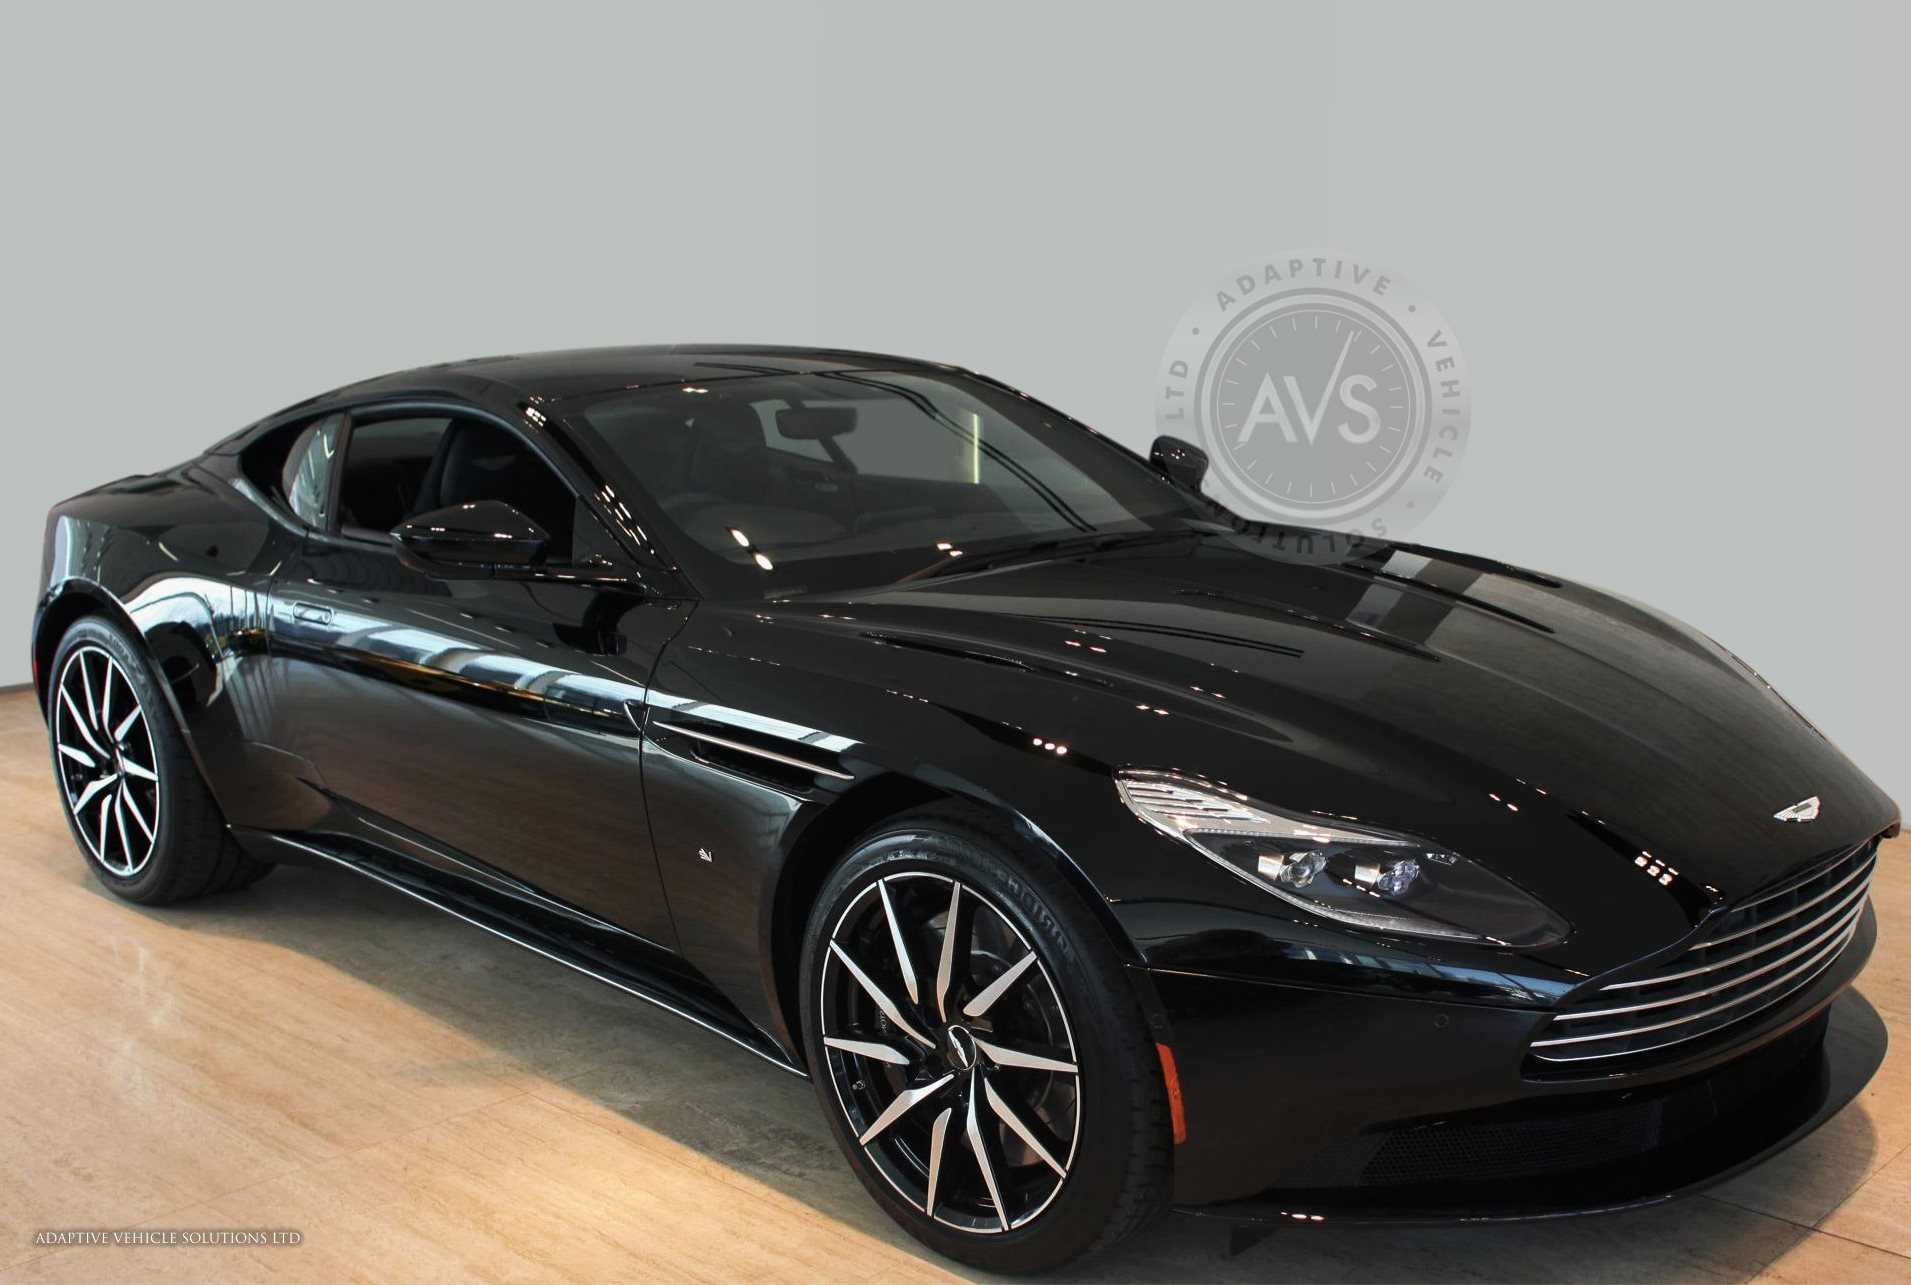 Aston Martin Car List With Price